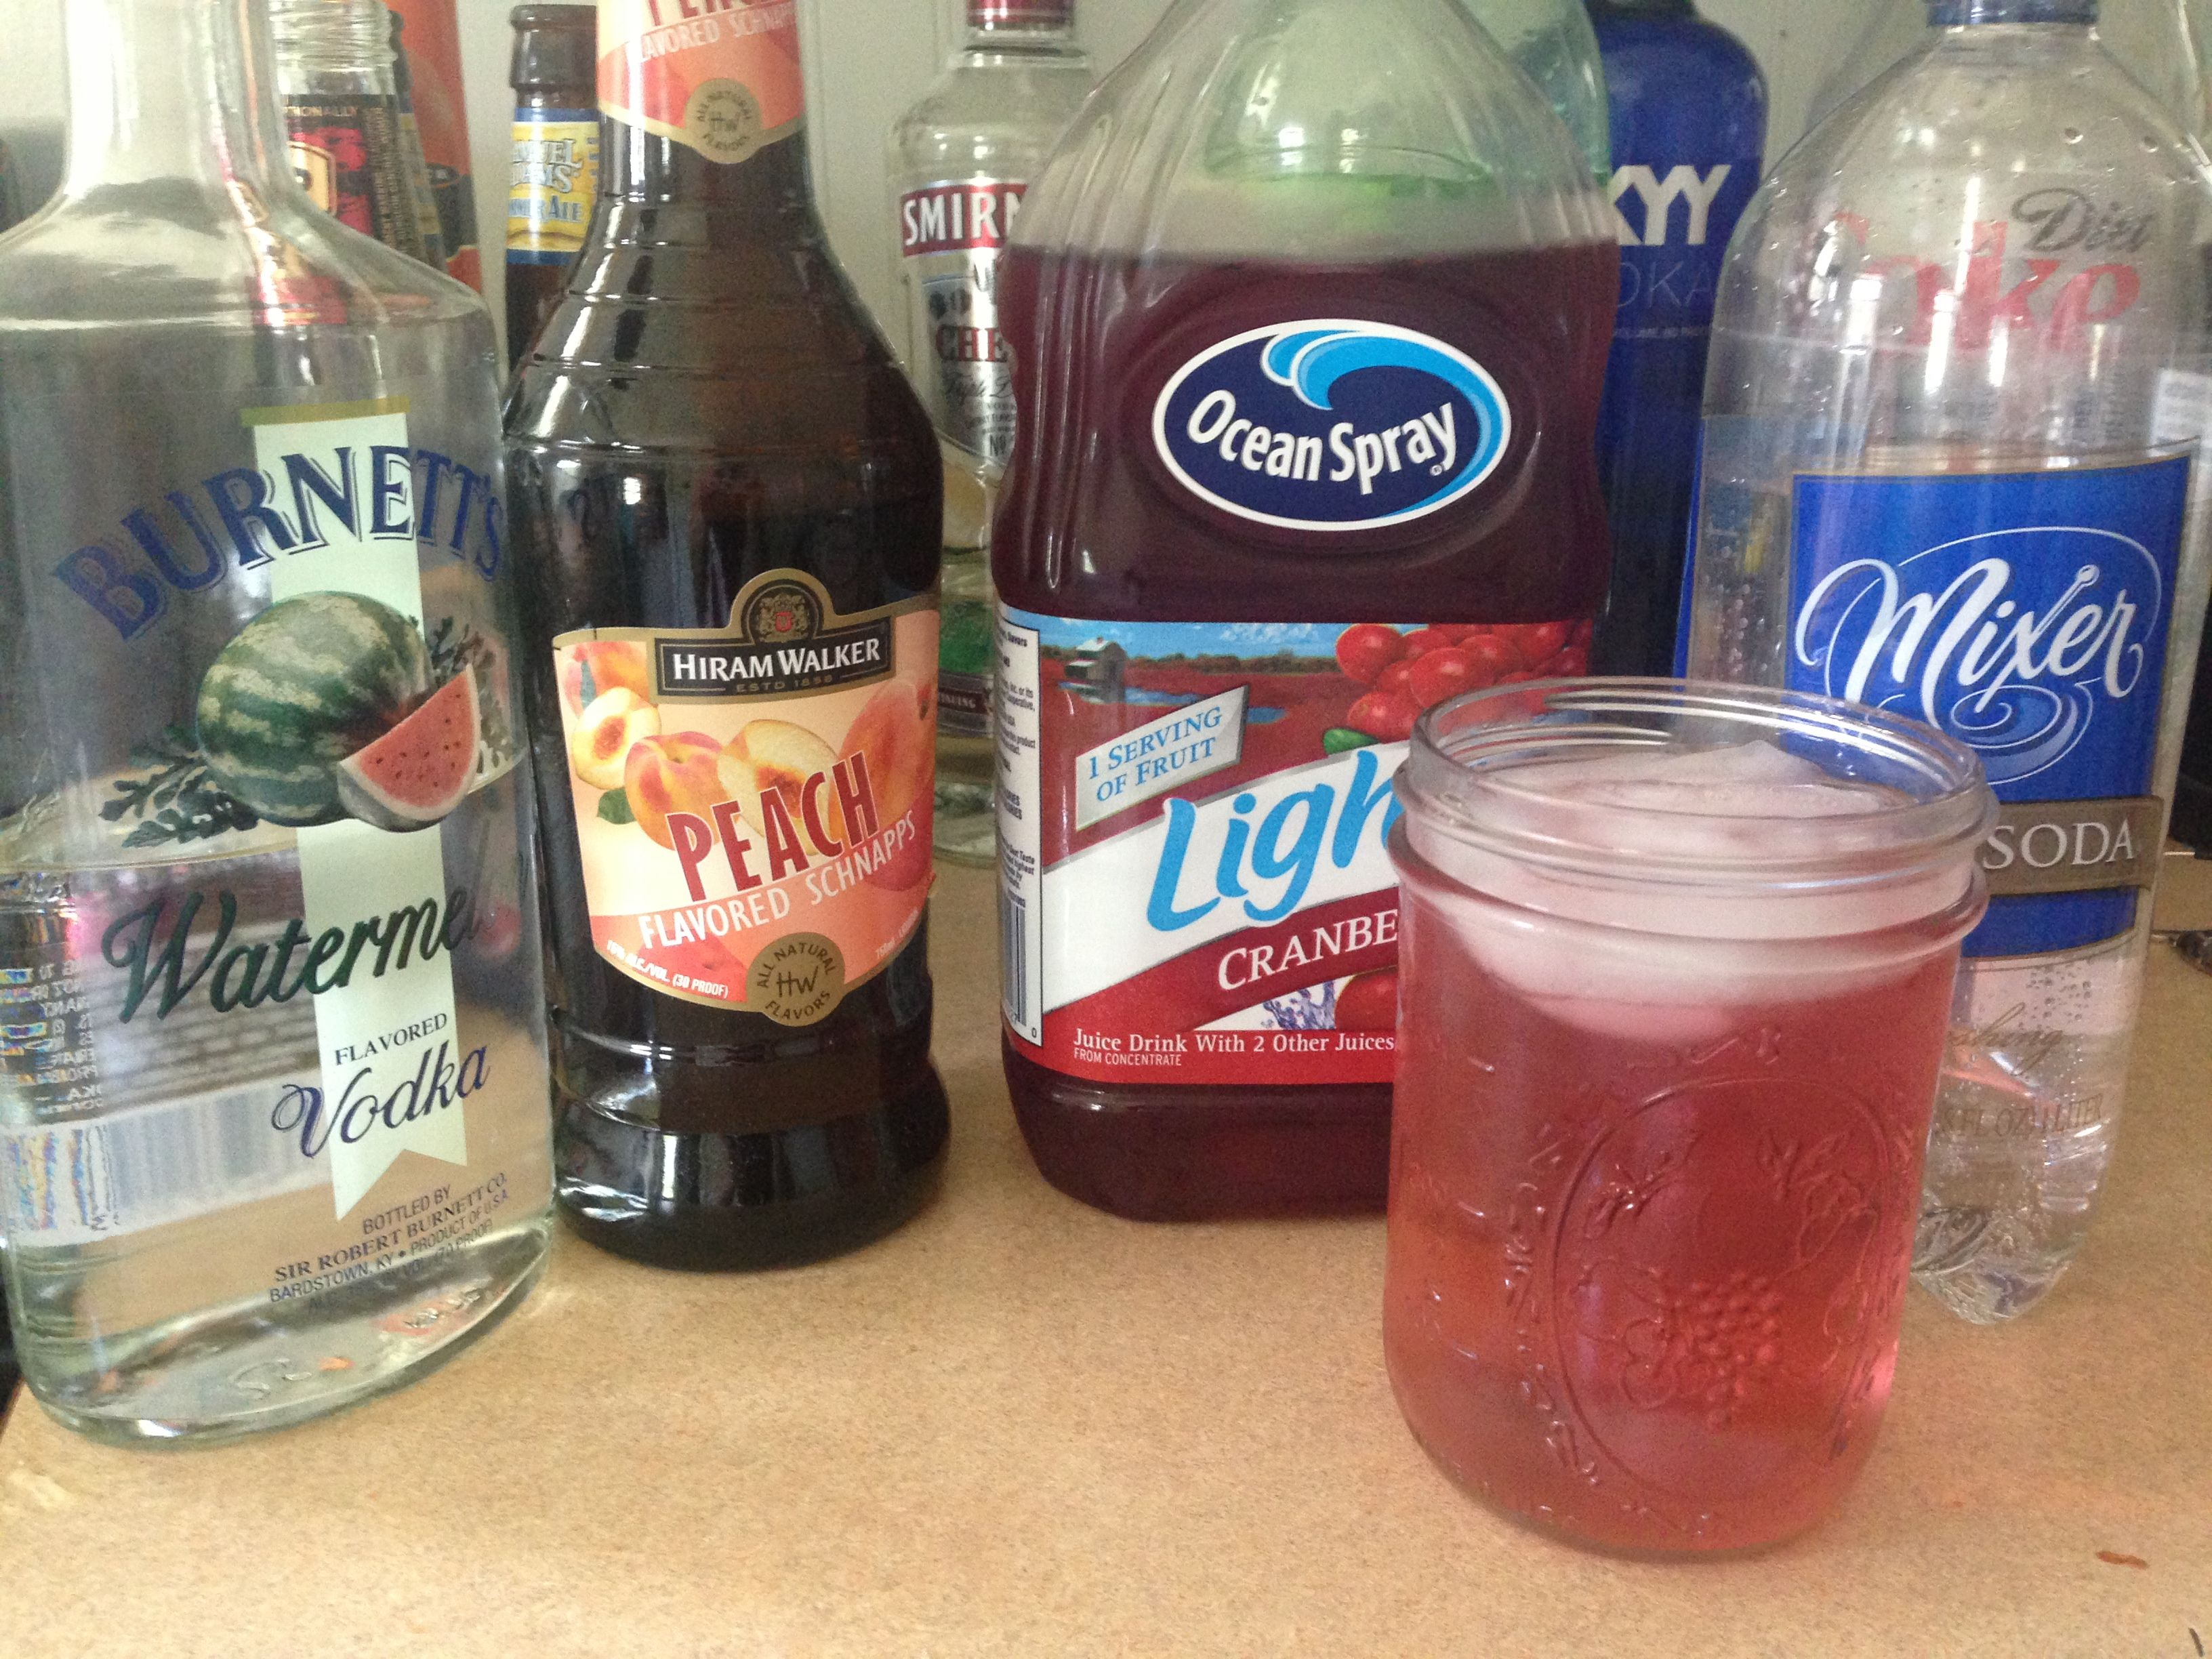 Jolly Rancher Watermelon Vodka Peach Schnapps Club Soda And A Splash Of Cranberry Juice Yum Watermelon Vodka Drinks Peach Schnapps